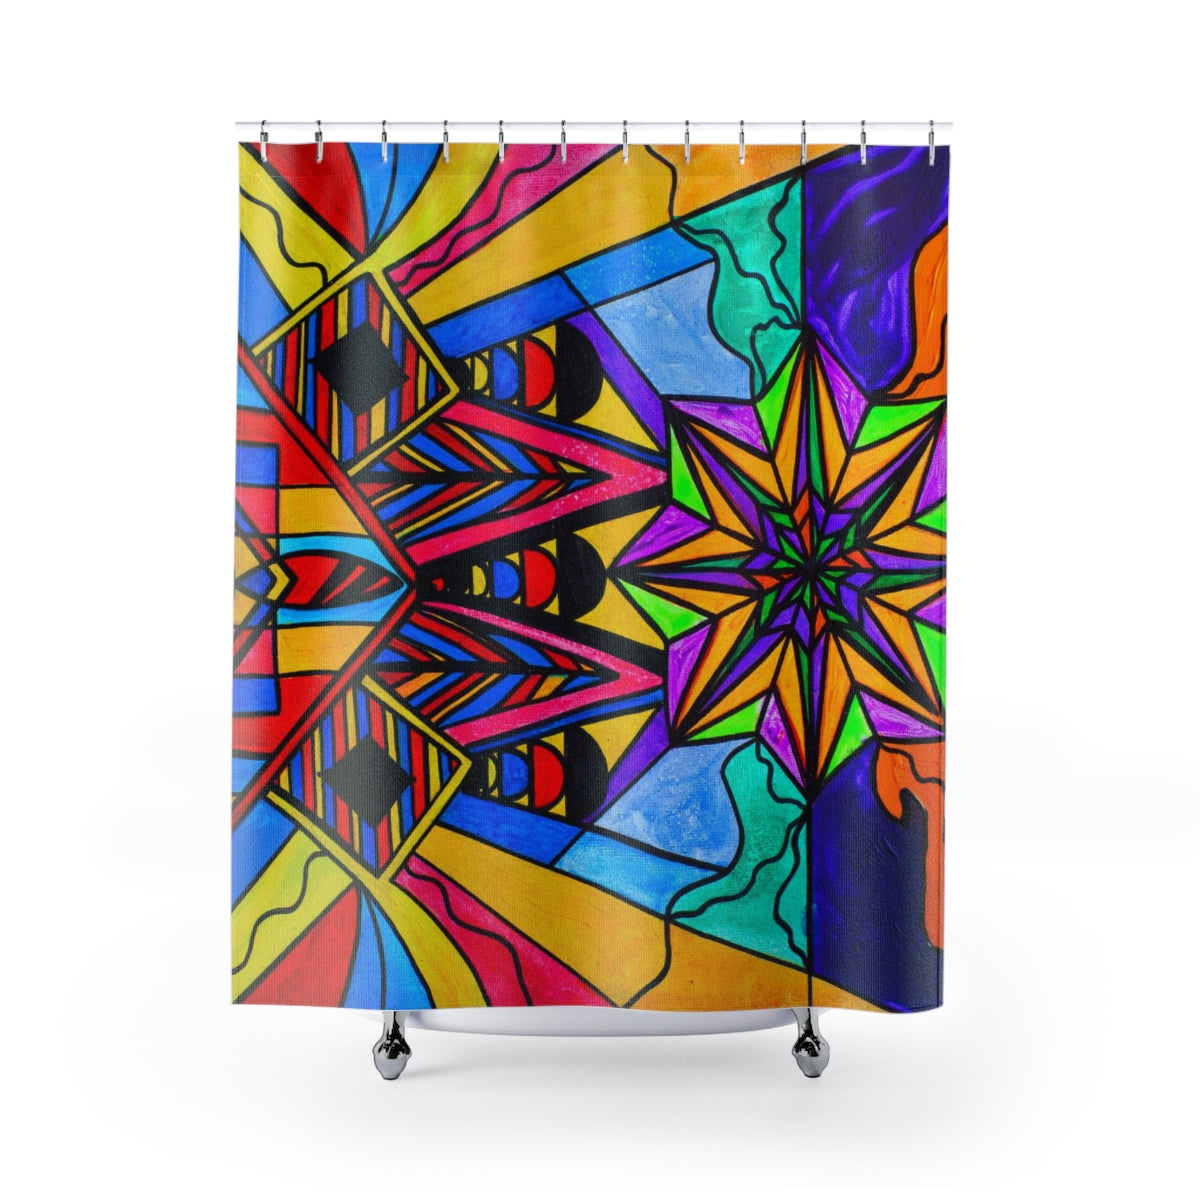 A Change In Perception - Shower Curtains